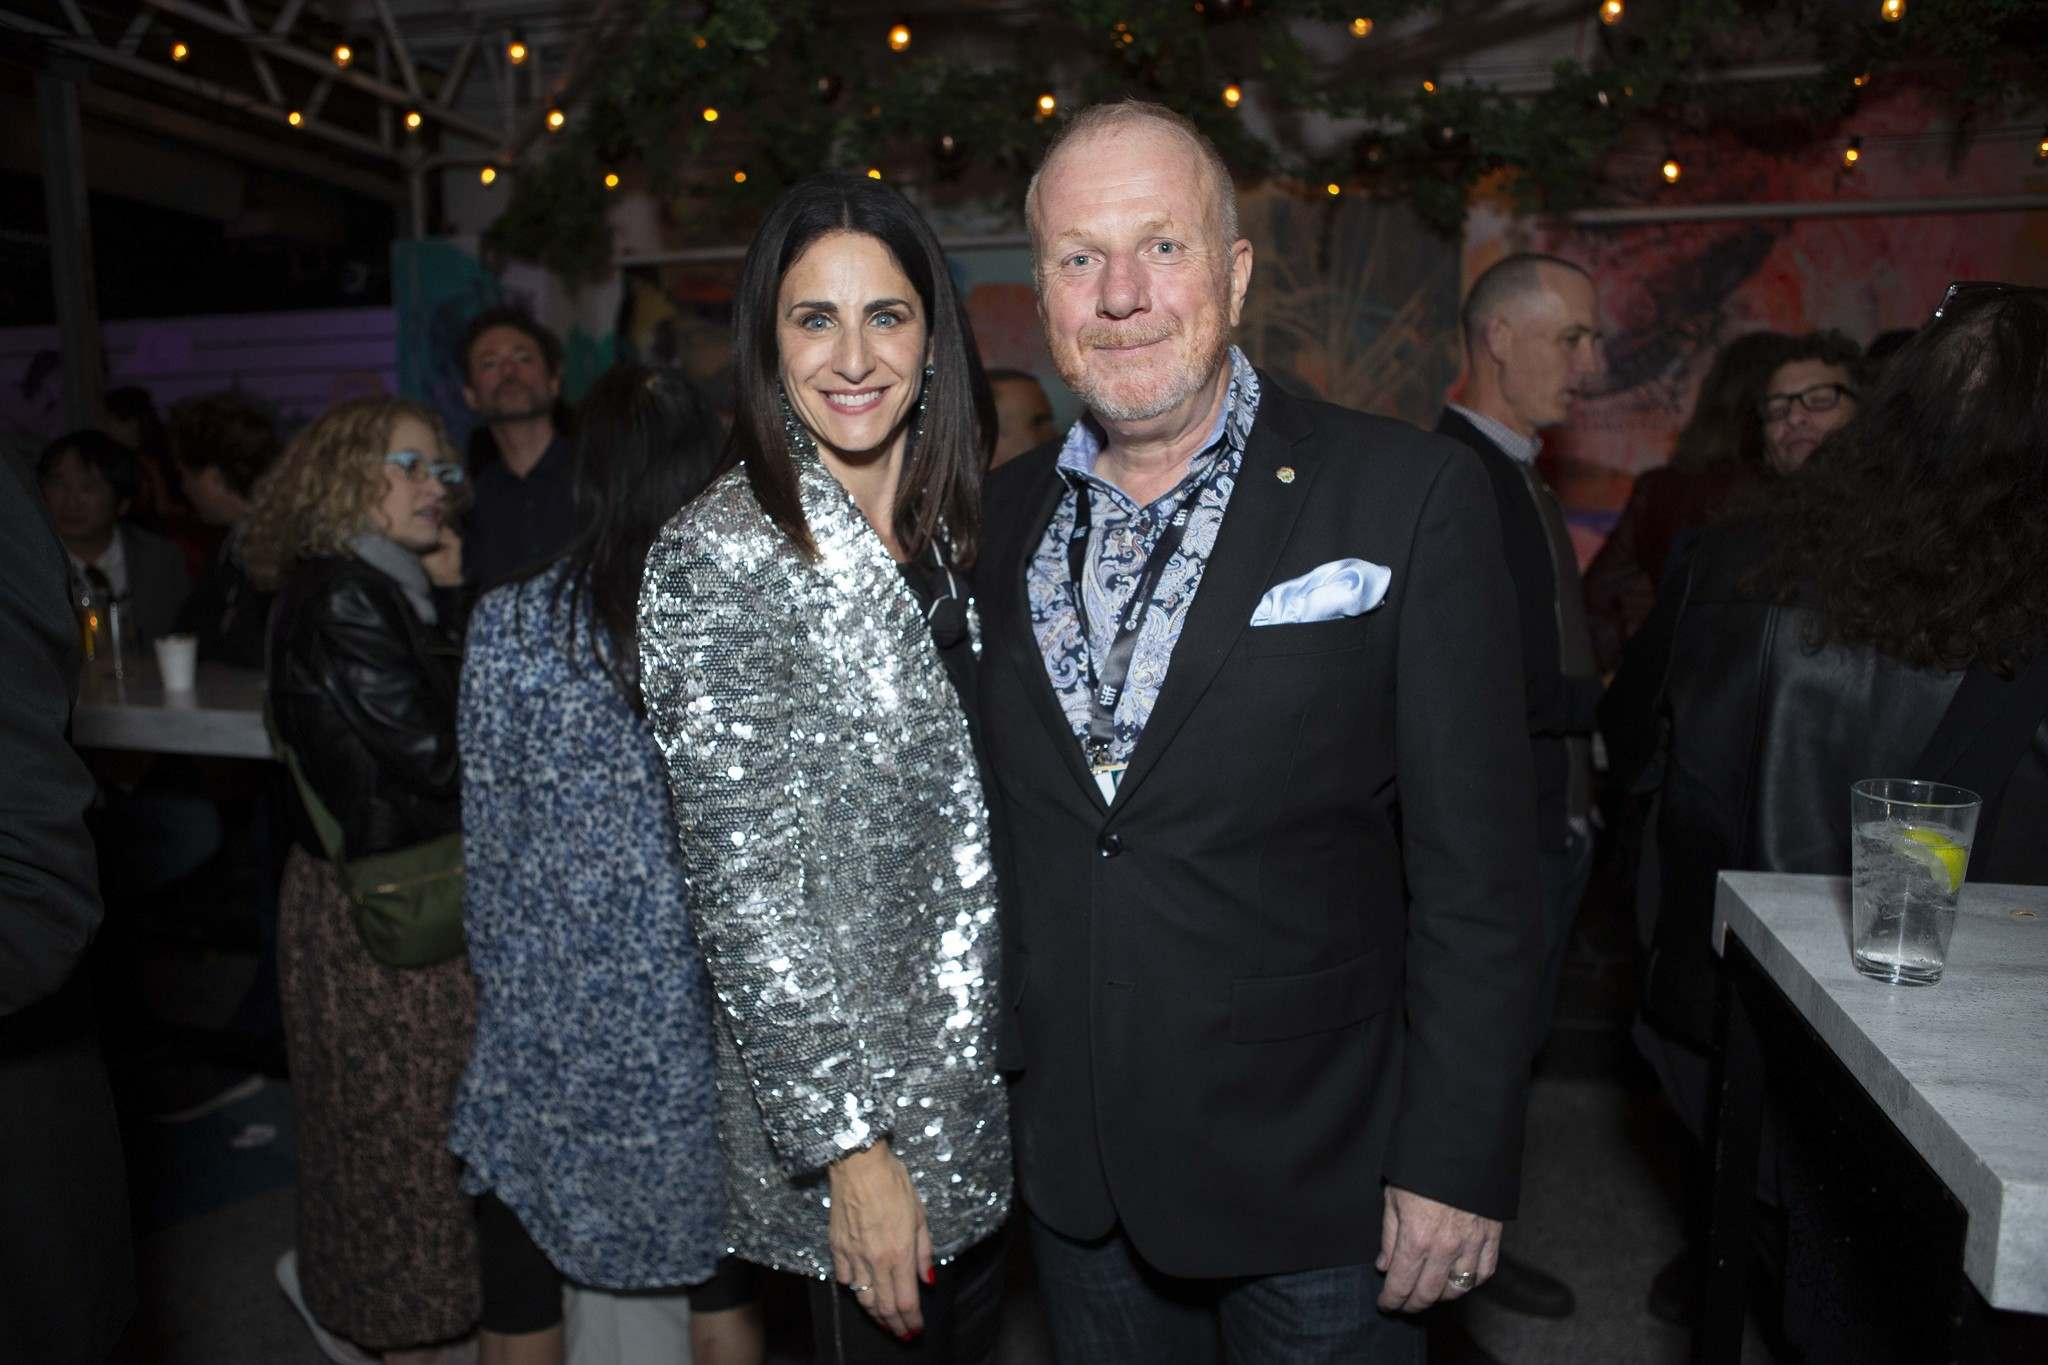 Manitoba Film and Music CEO Rachel Rusen Margolis and Kenny Boyce, manager of film and special events for the City of Winnipeg. (David Spowart photo)